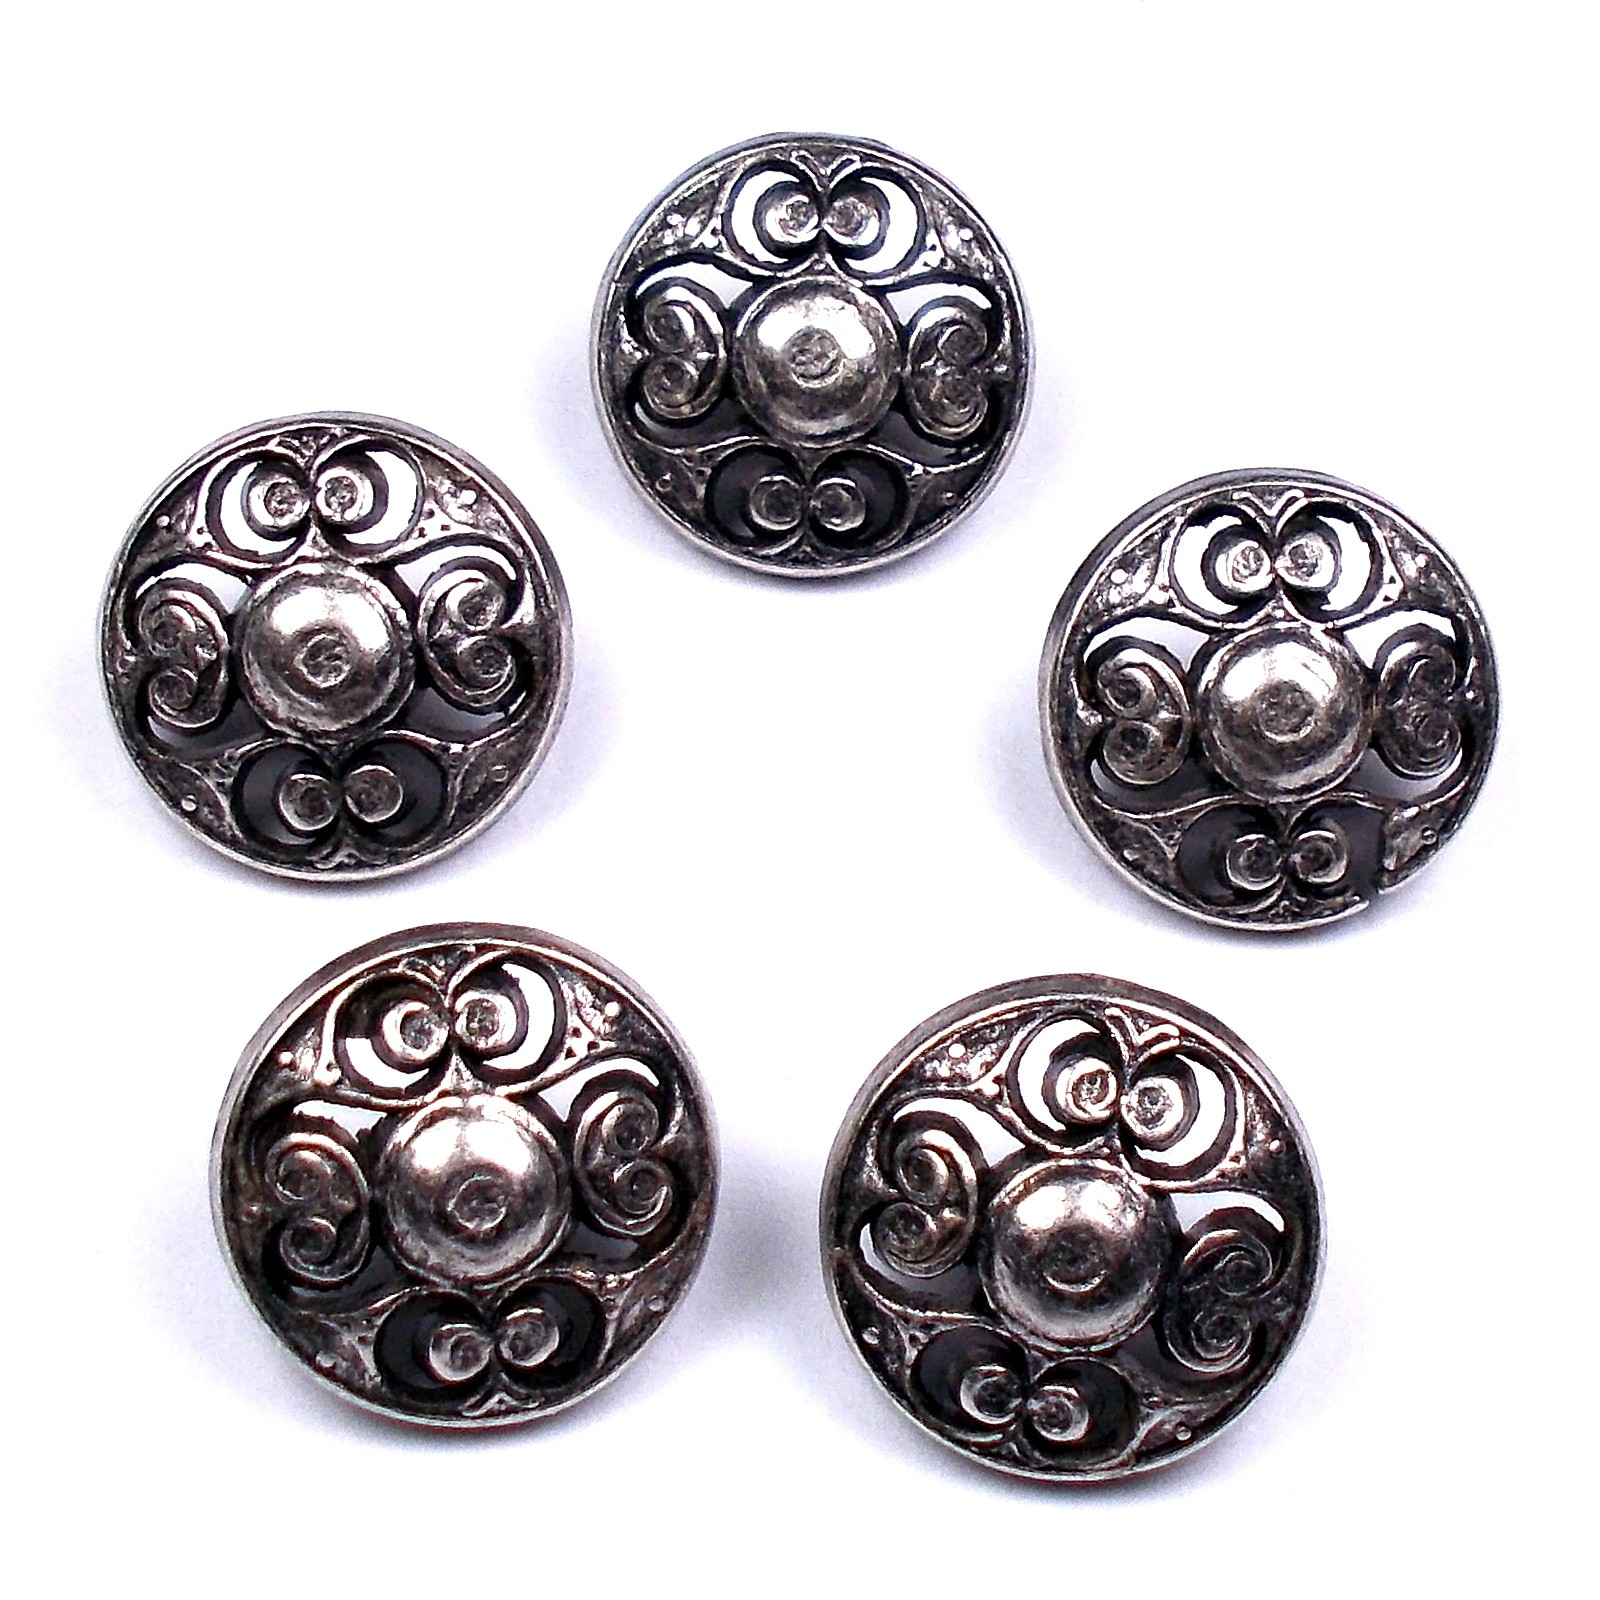 Vintage Style Metal Filigree Buttons 15mm Silver Pack of 5